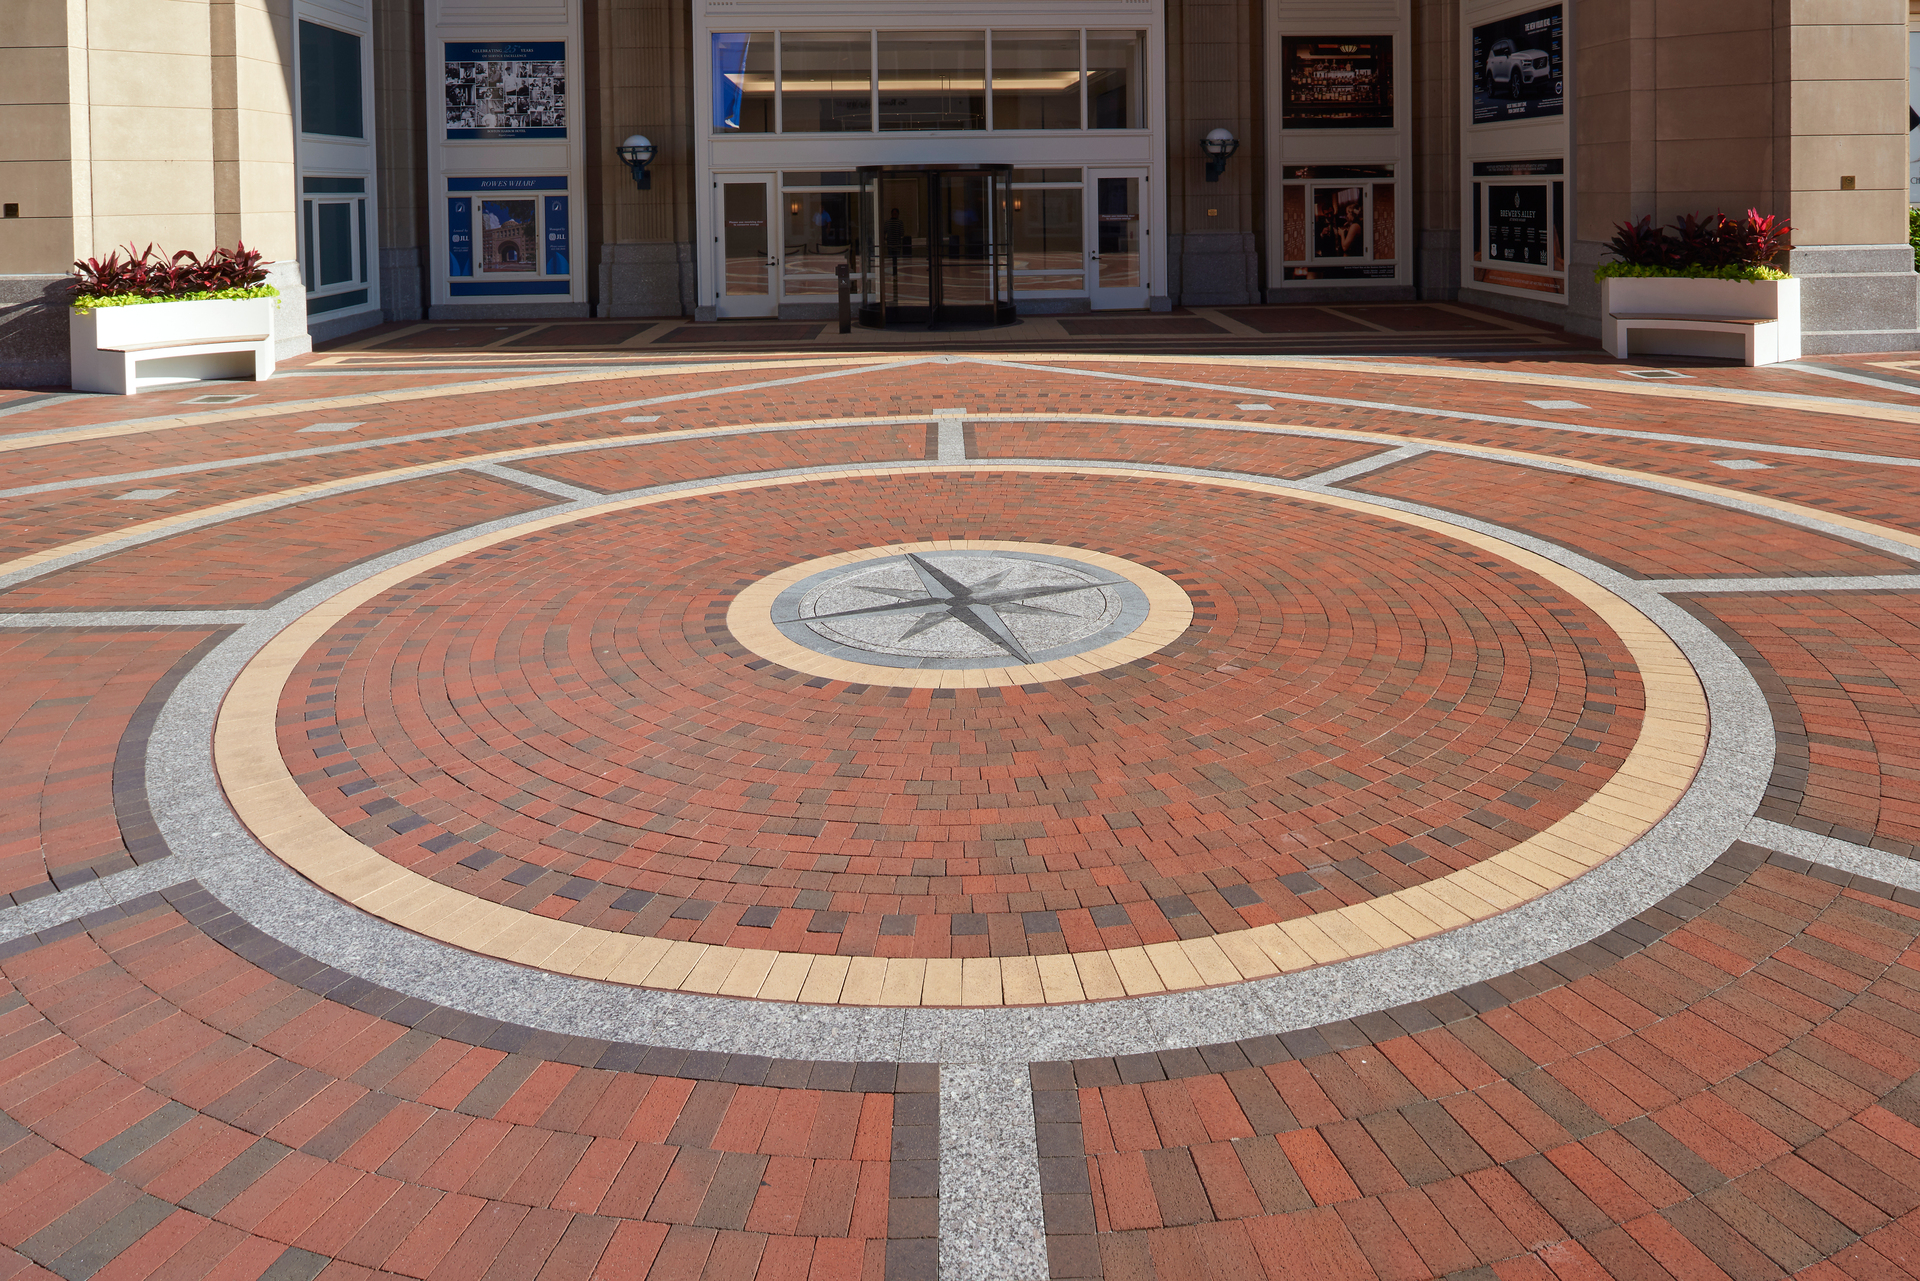 Wessling Architects helped with the Rowes Wharf Restoration project of Boston, MA. With brick pavers from Belden Brick, the walkway is waterproof, sturdy and seen here as with a decorative design.